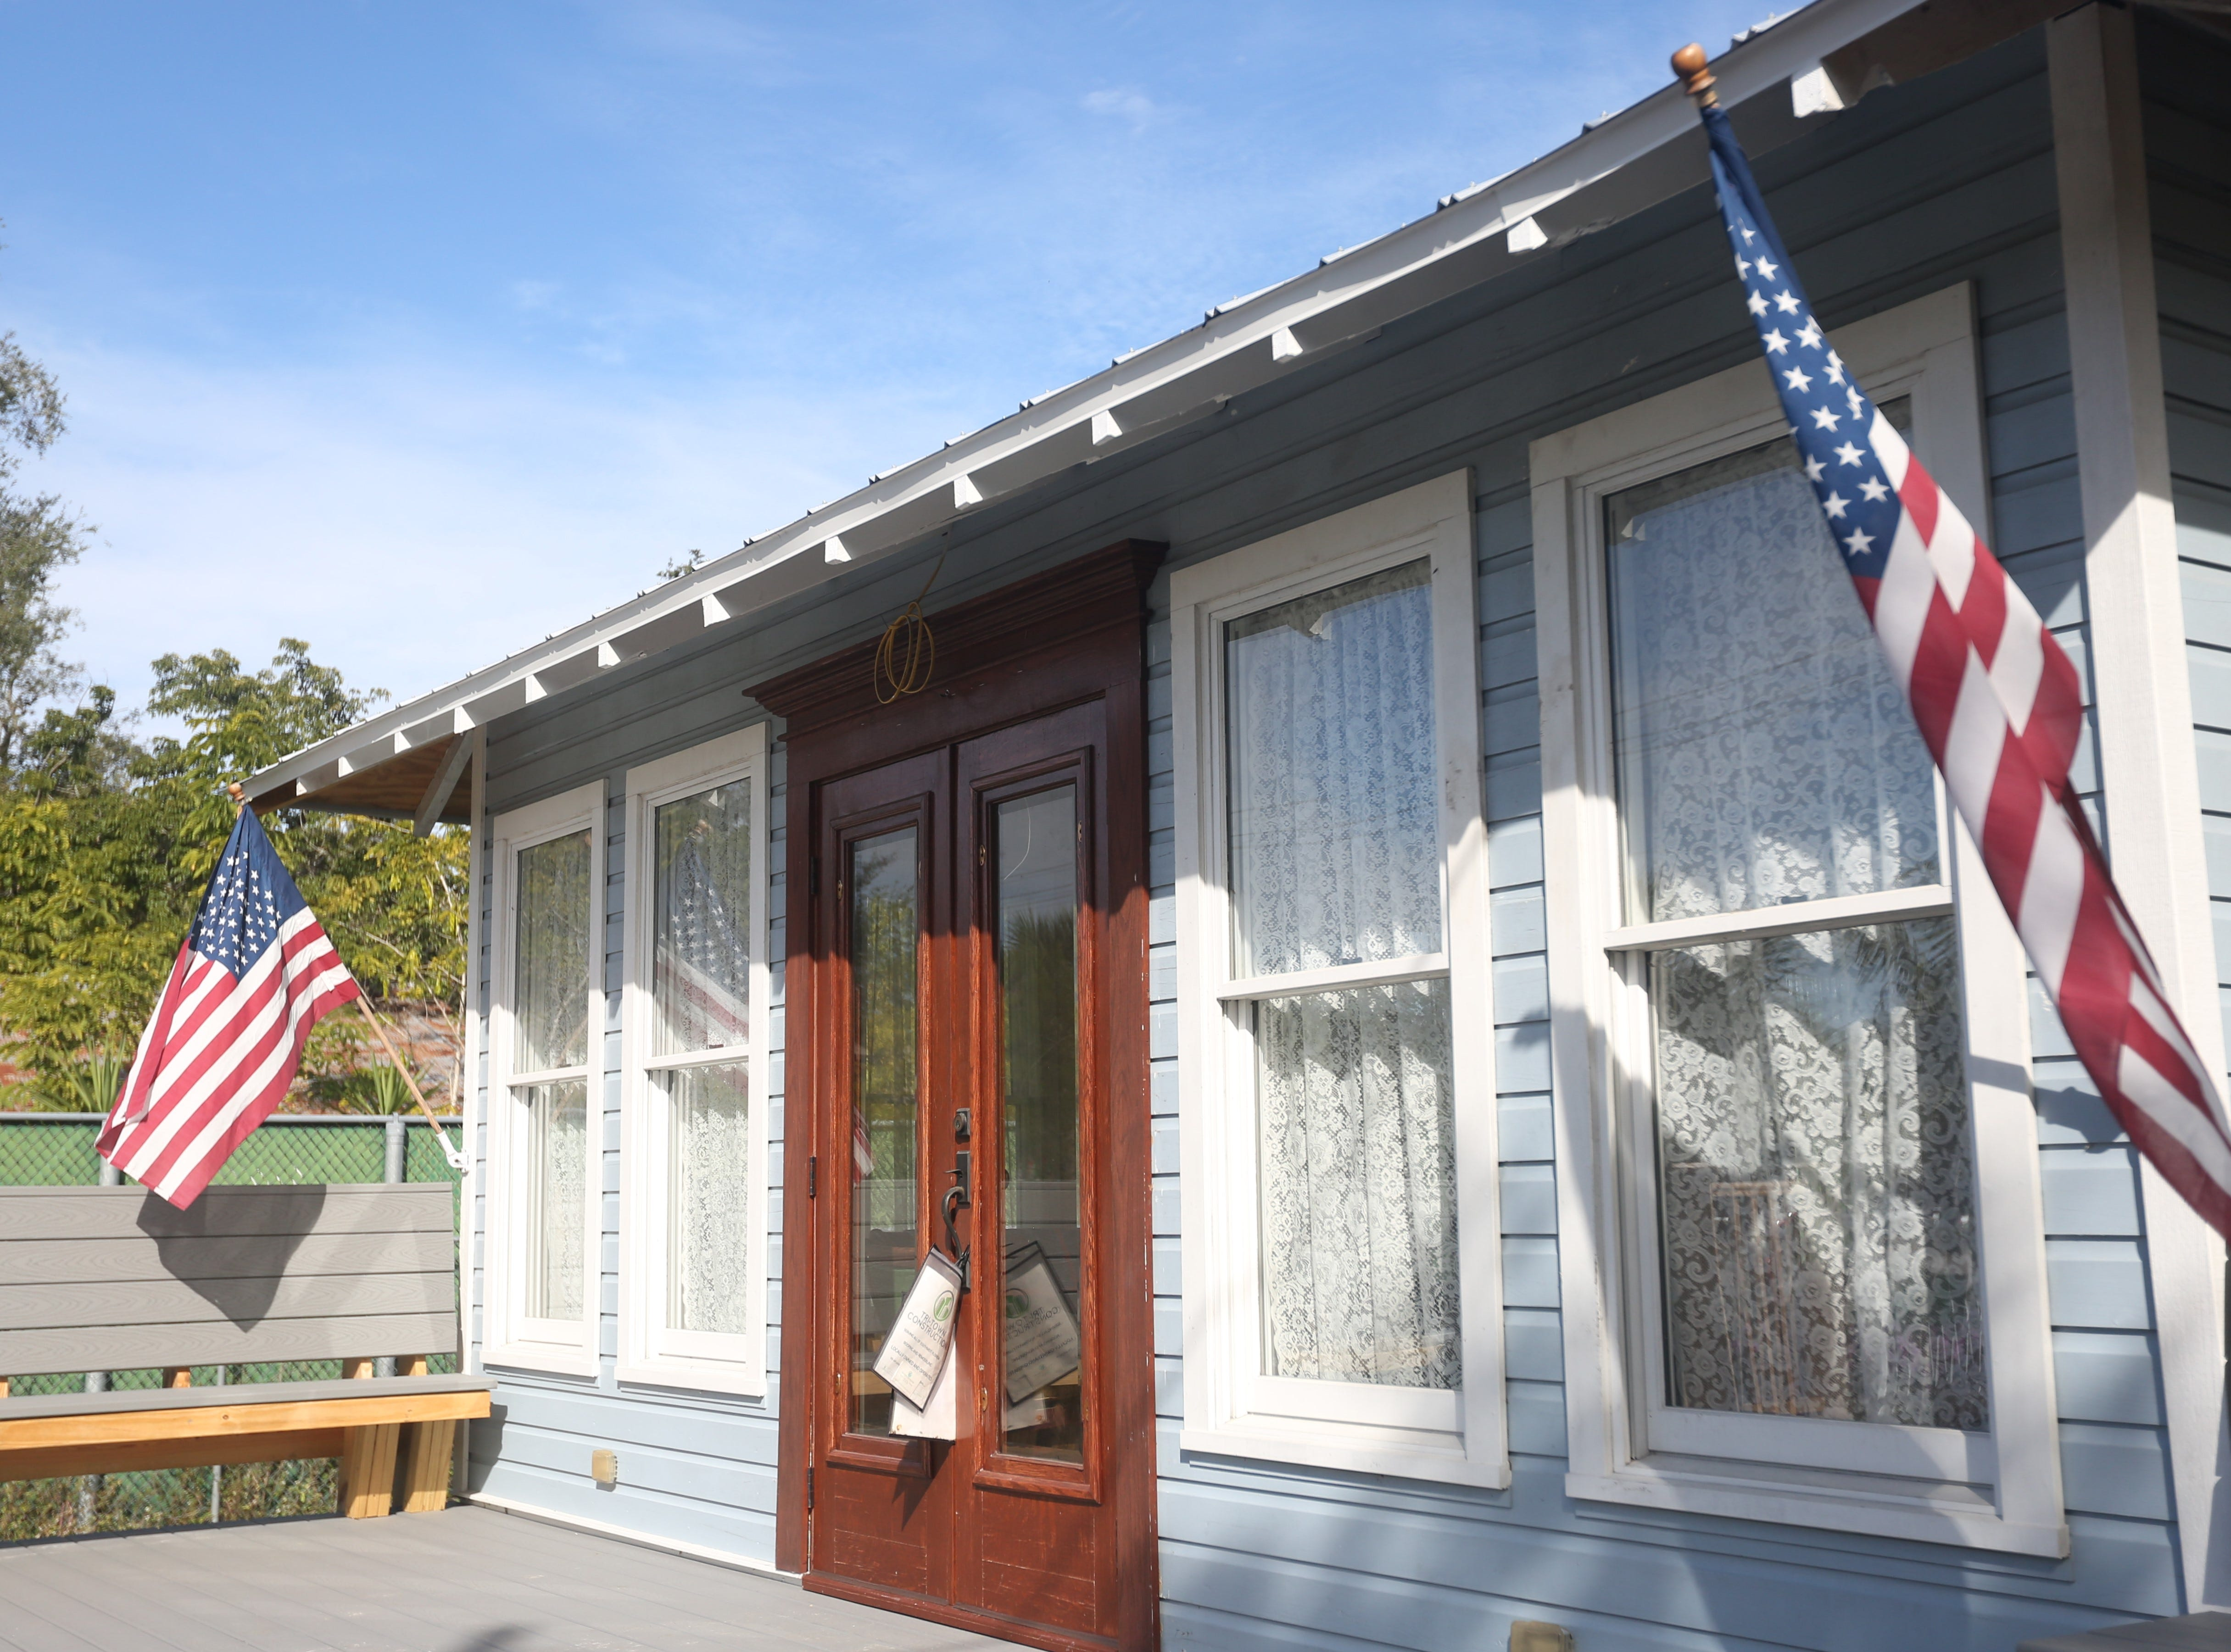 Renovations on the century-old McSwain House in downtown Bonita Springs are nearly finished after more than a year of work.